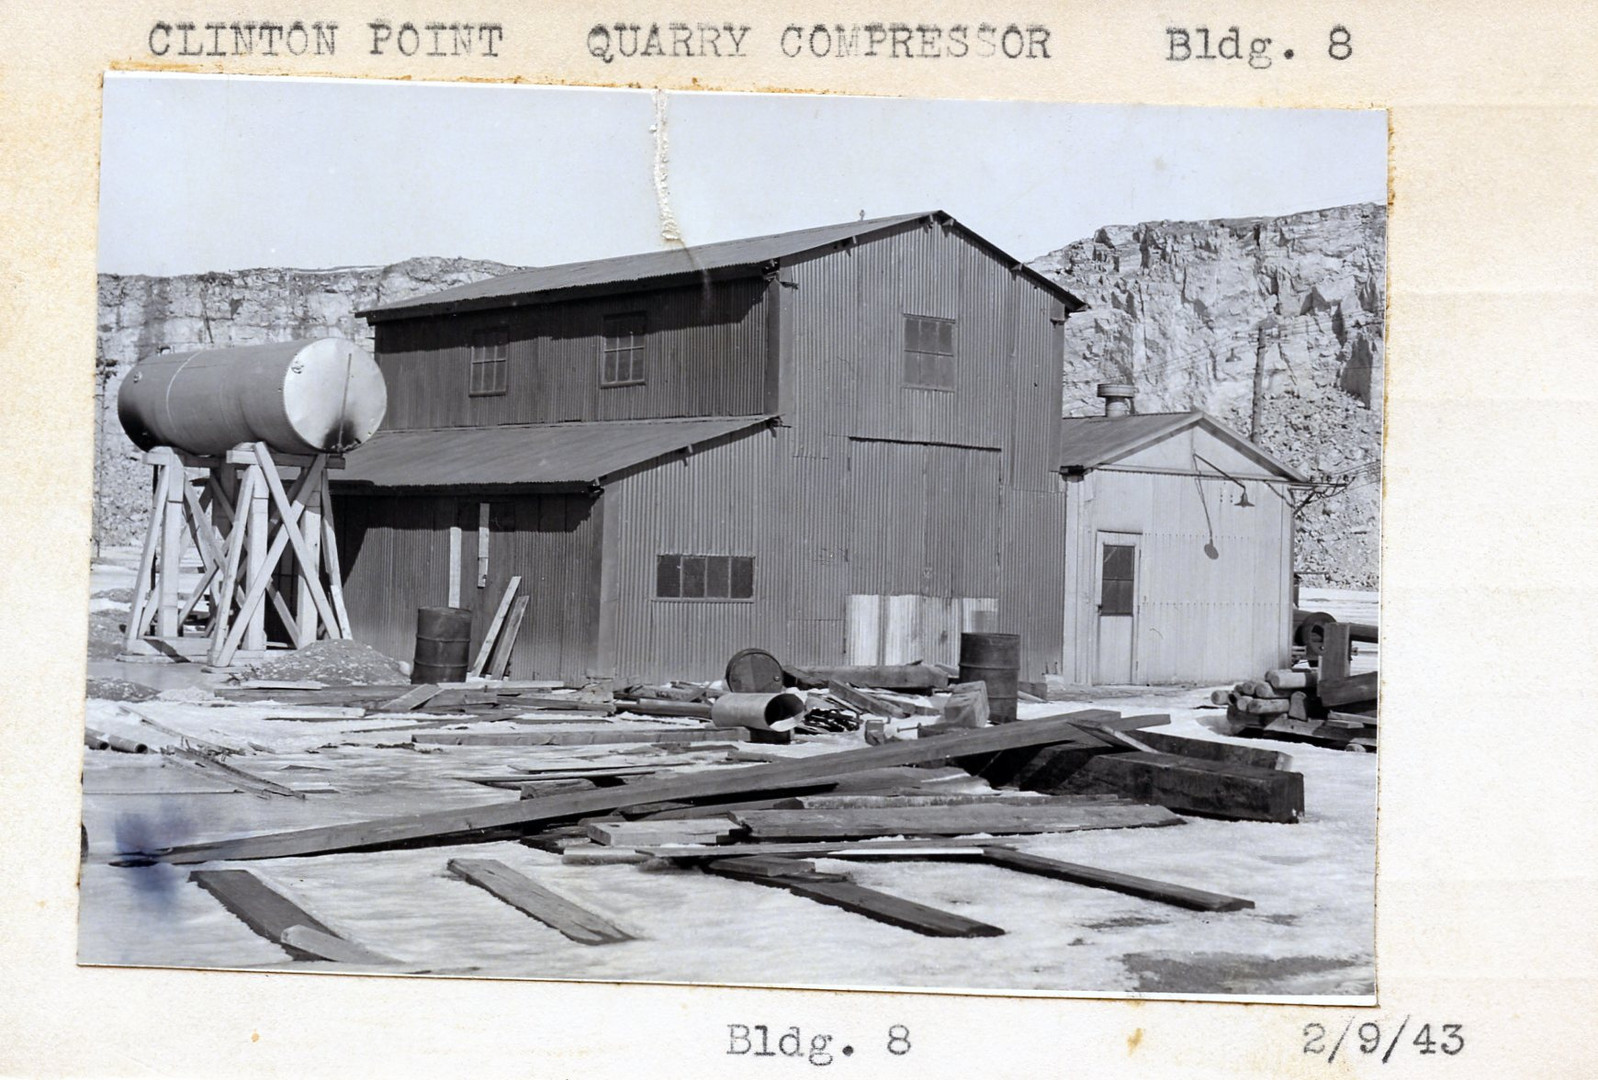 Quarry Compressor, Building #8 2/9/43